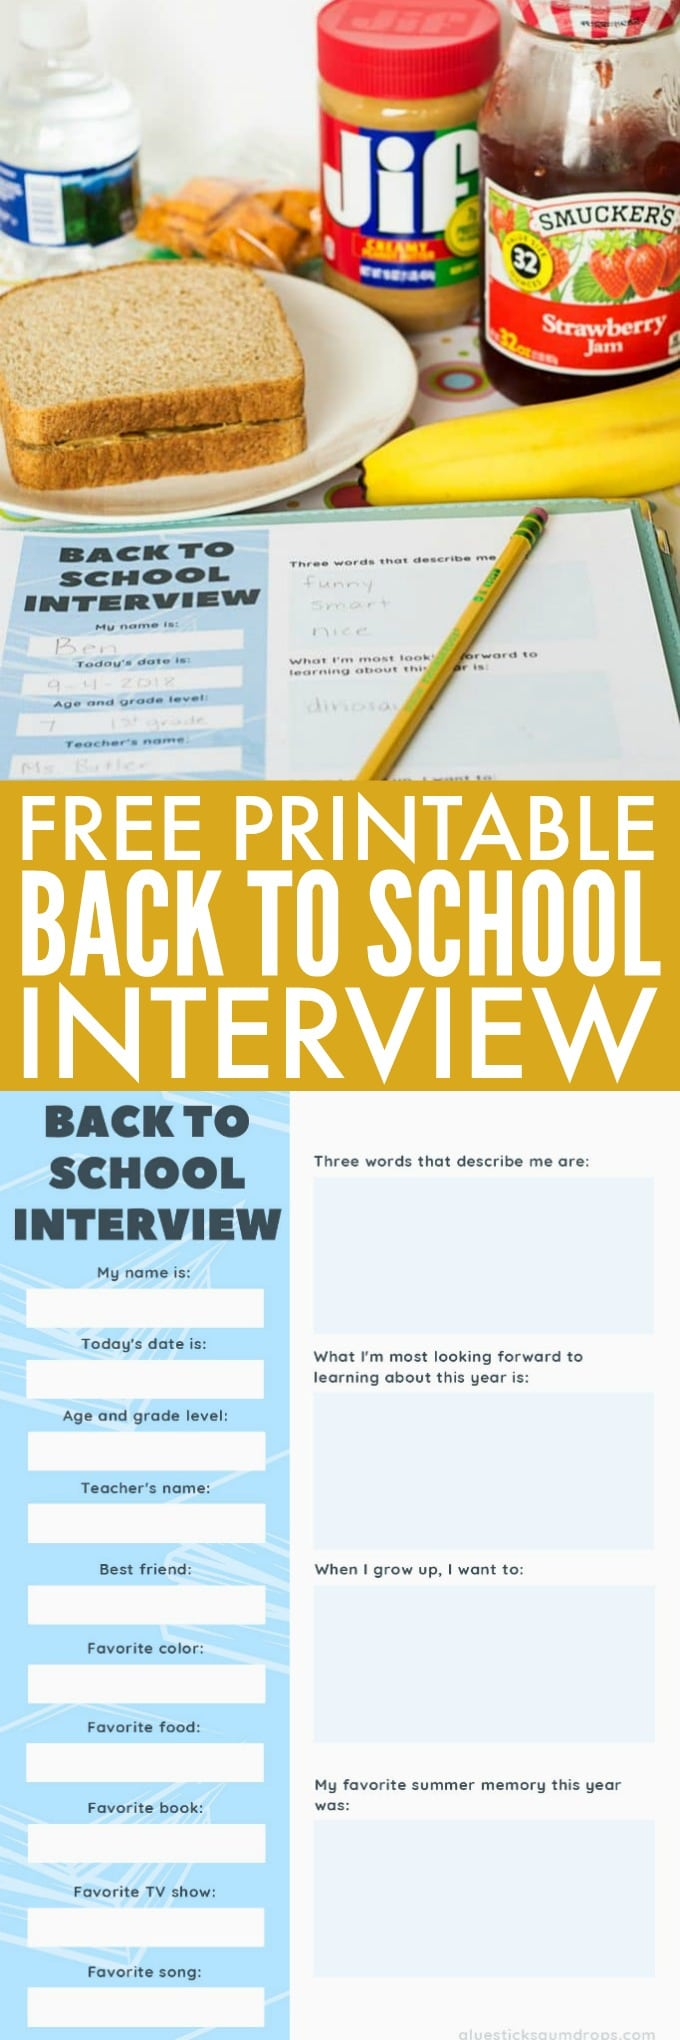 Free Printable Back to School Interview